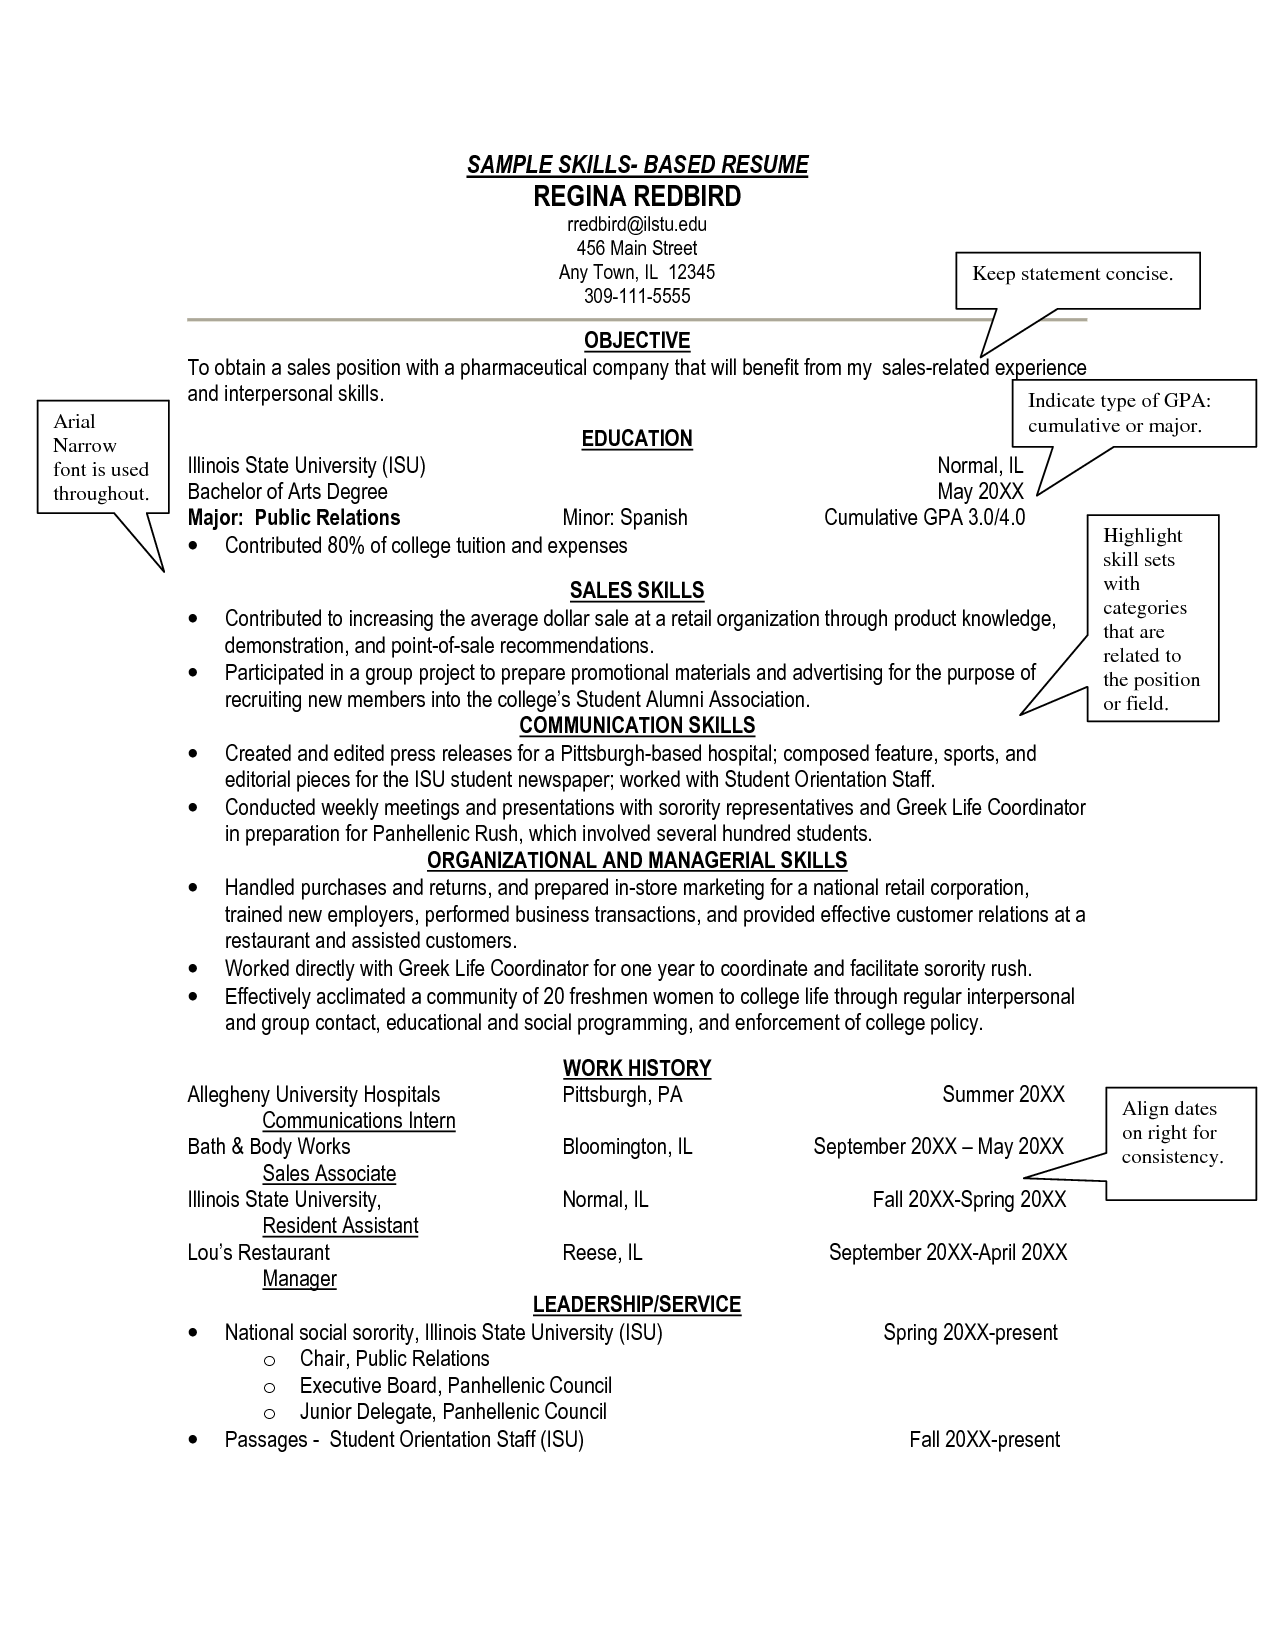 Sample Skills Resume Template  Interview    Sample